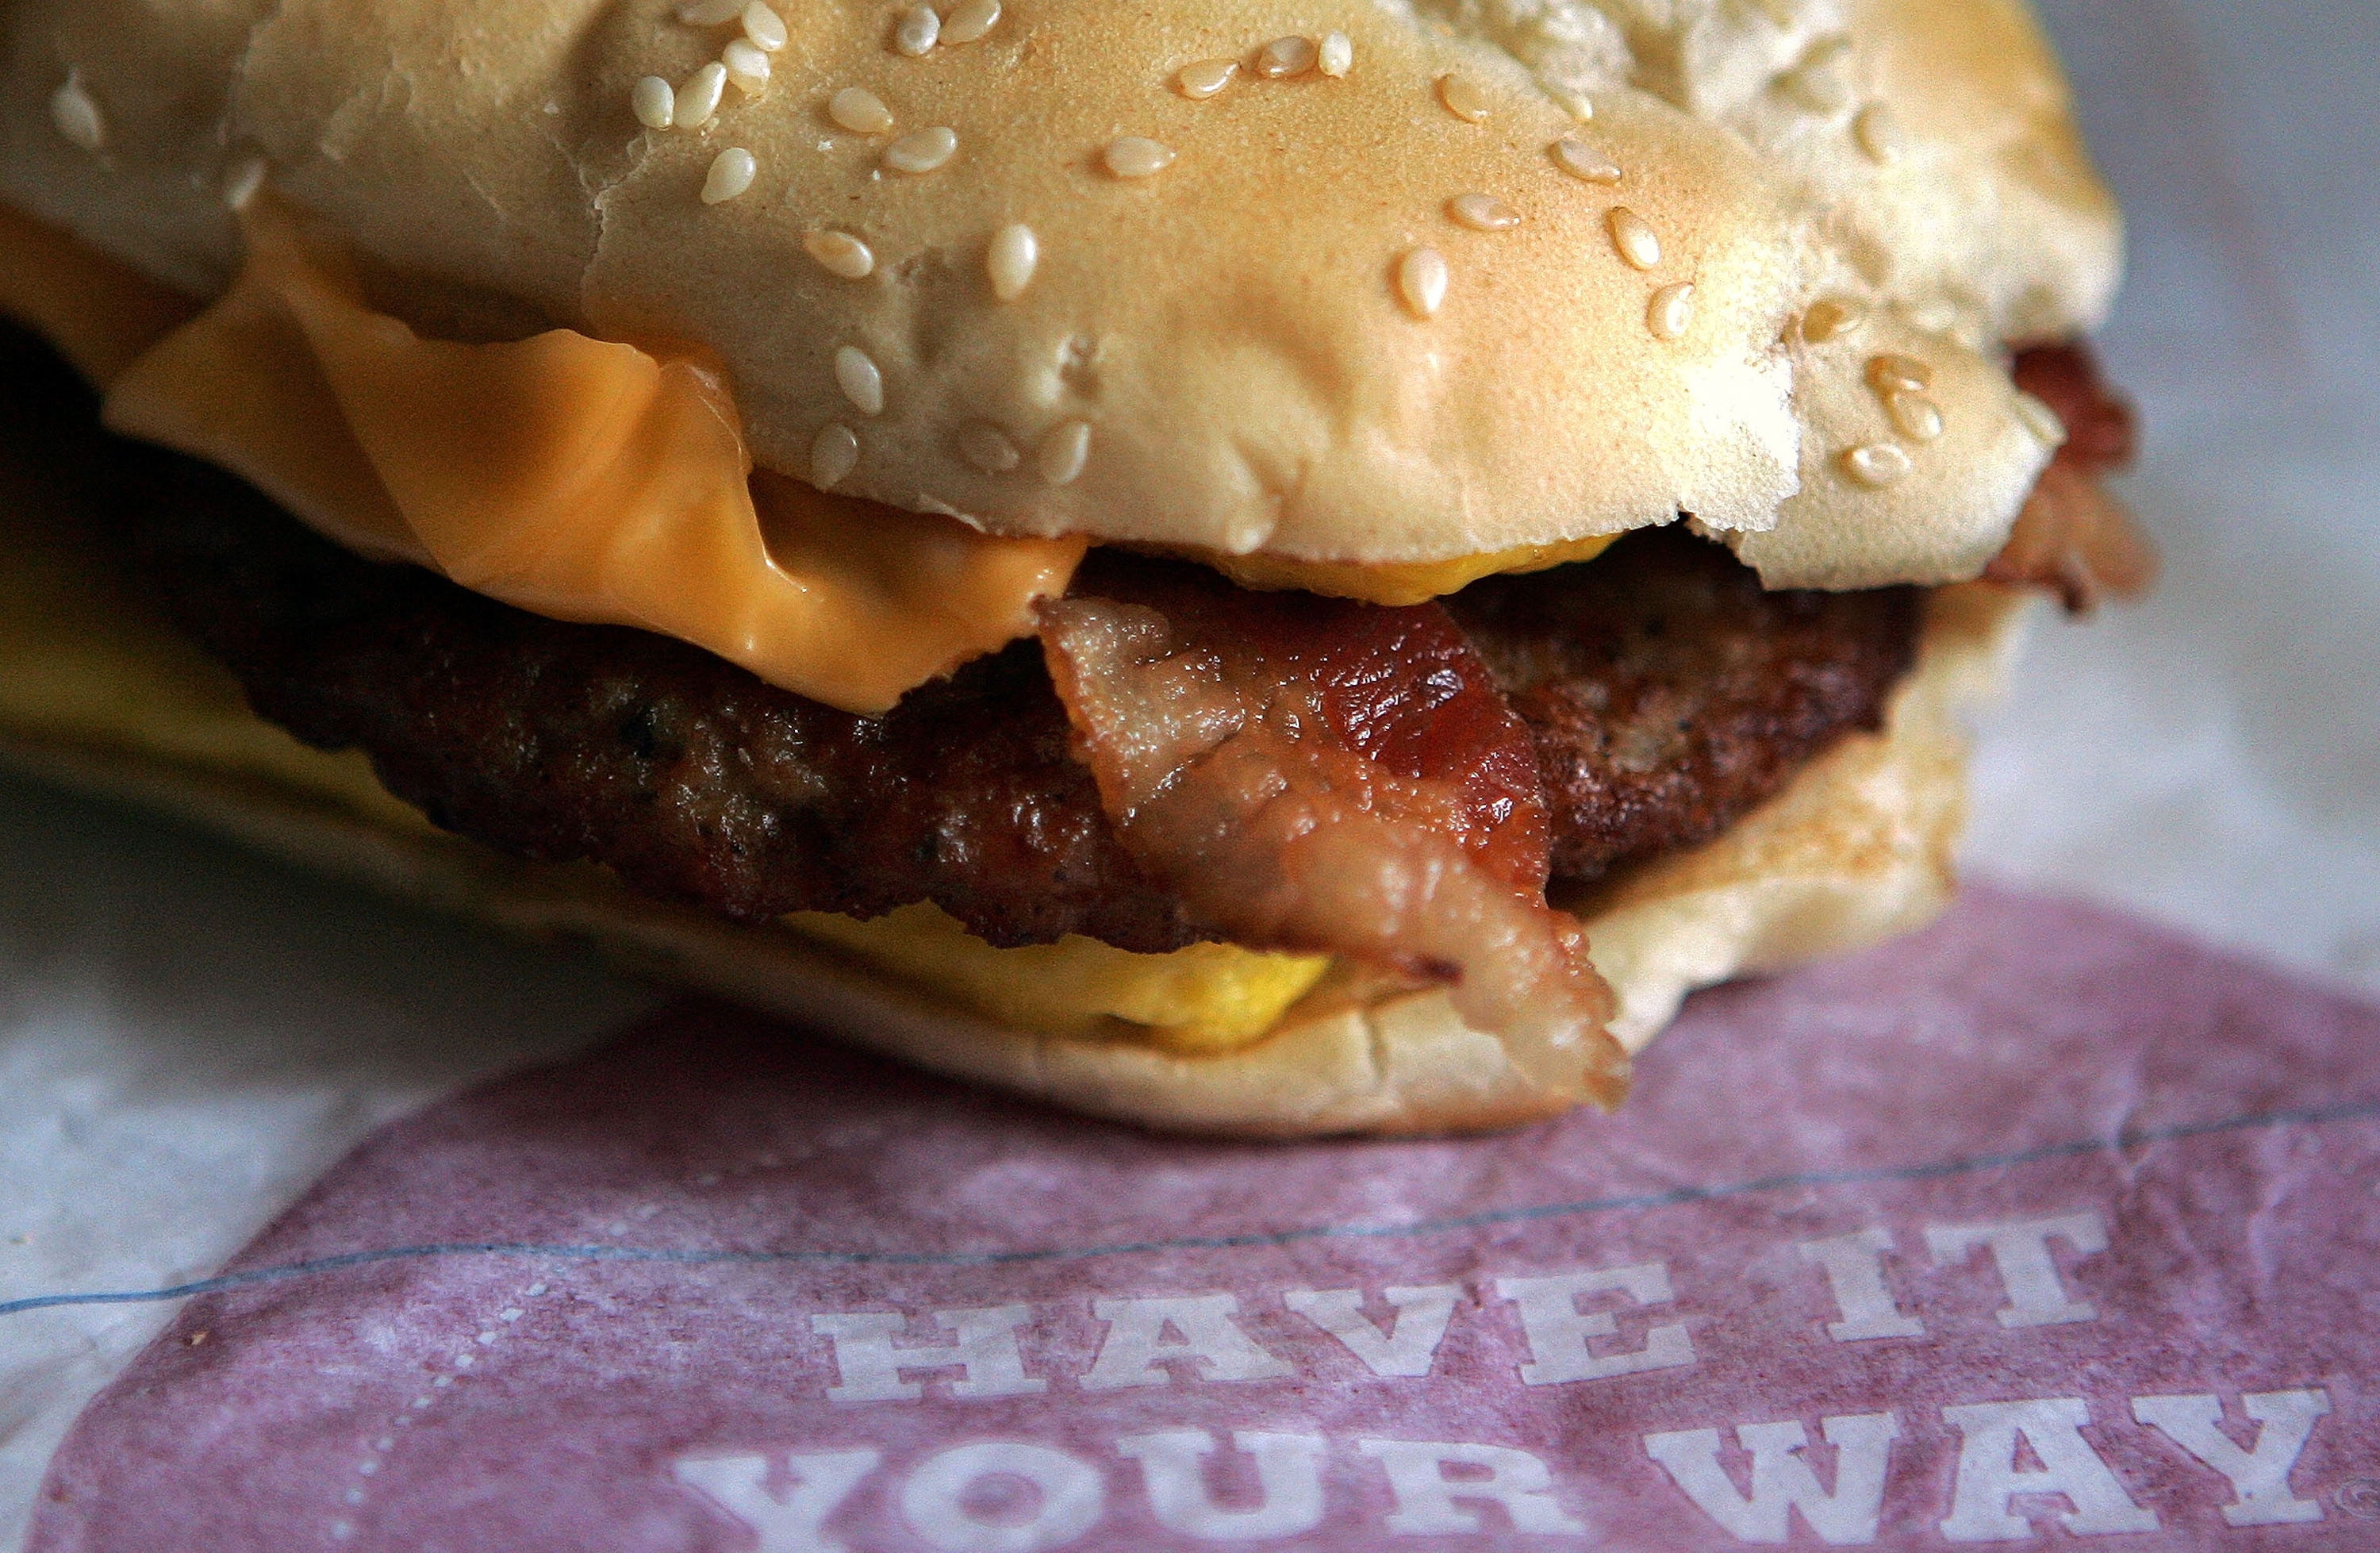 Burger King has been known to offer over-the-top menu items.